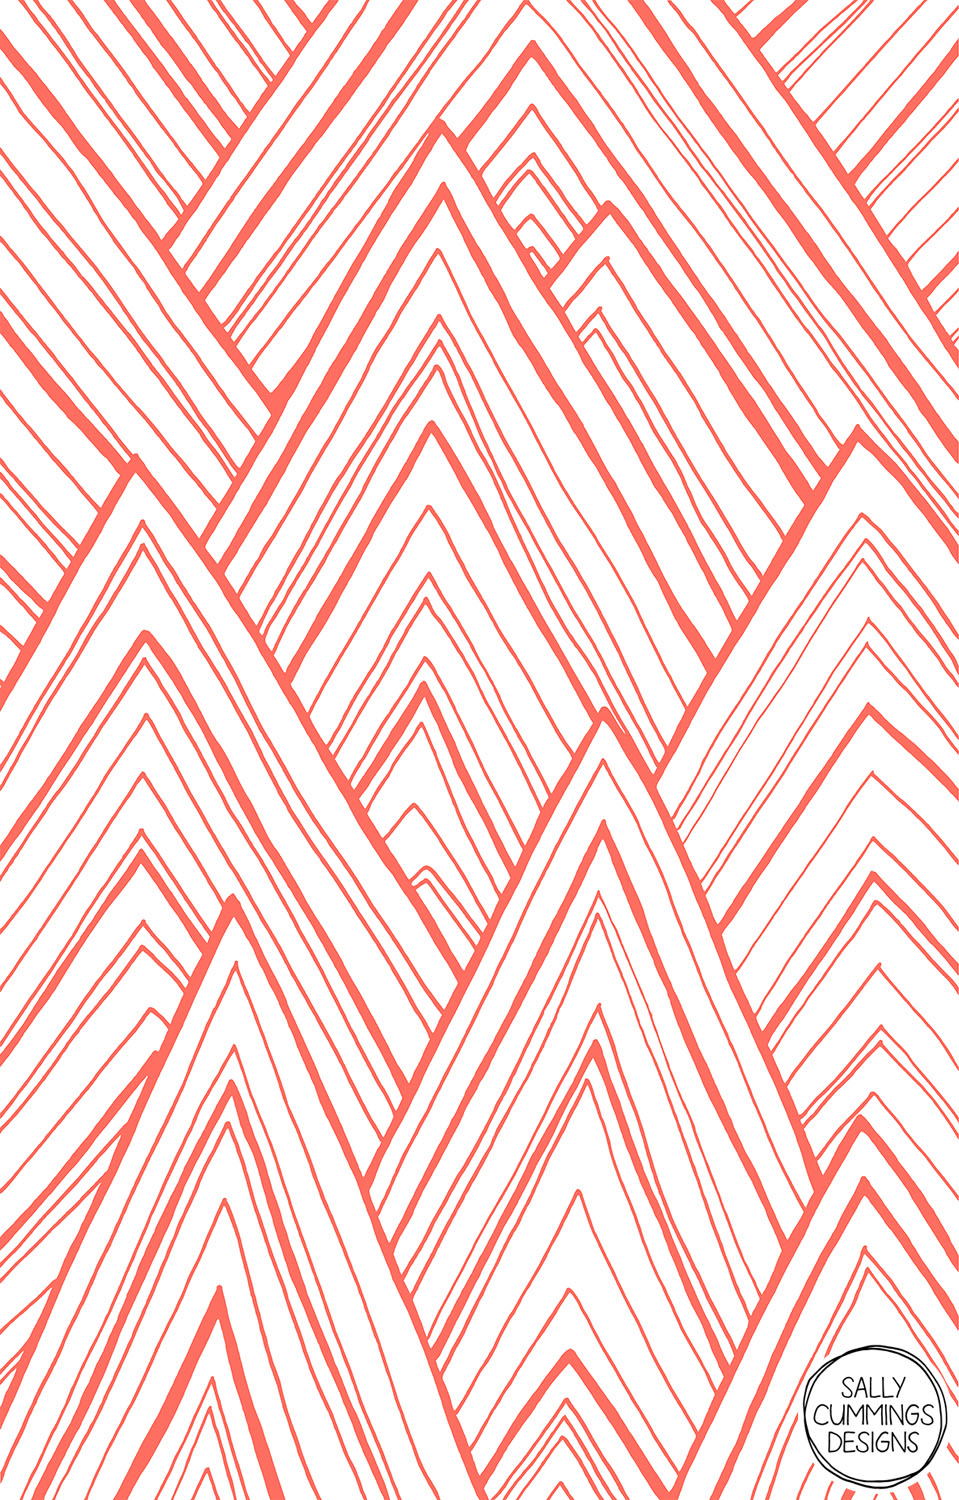 Sally Cummings Designs - Stripe Mountains (Living Coral)